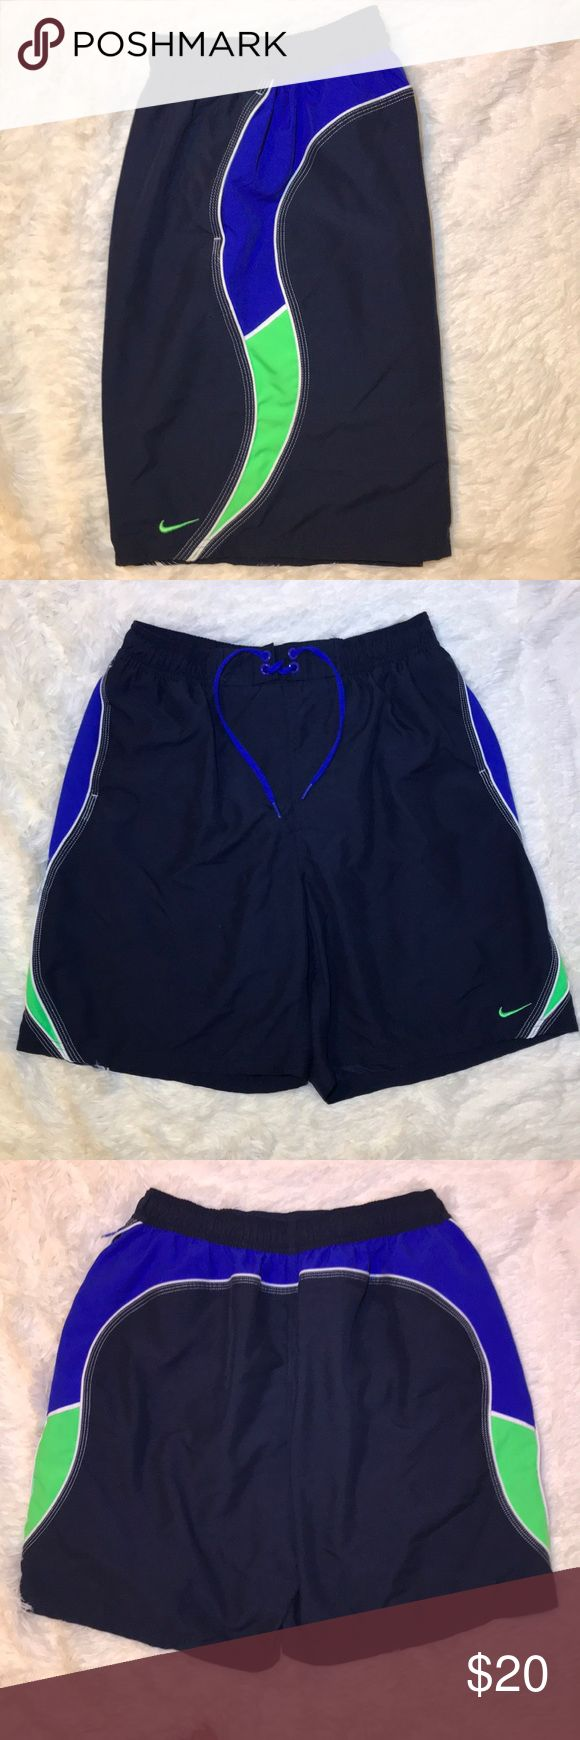 Nike swim shorts Excellent condition! No piling. Pockets on the sides. Nike Swim Swim Trunks